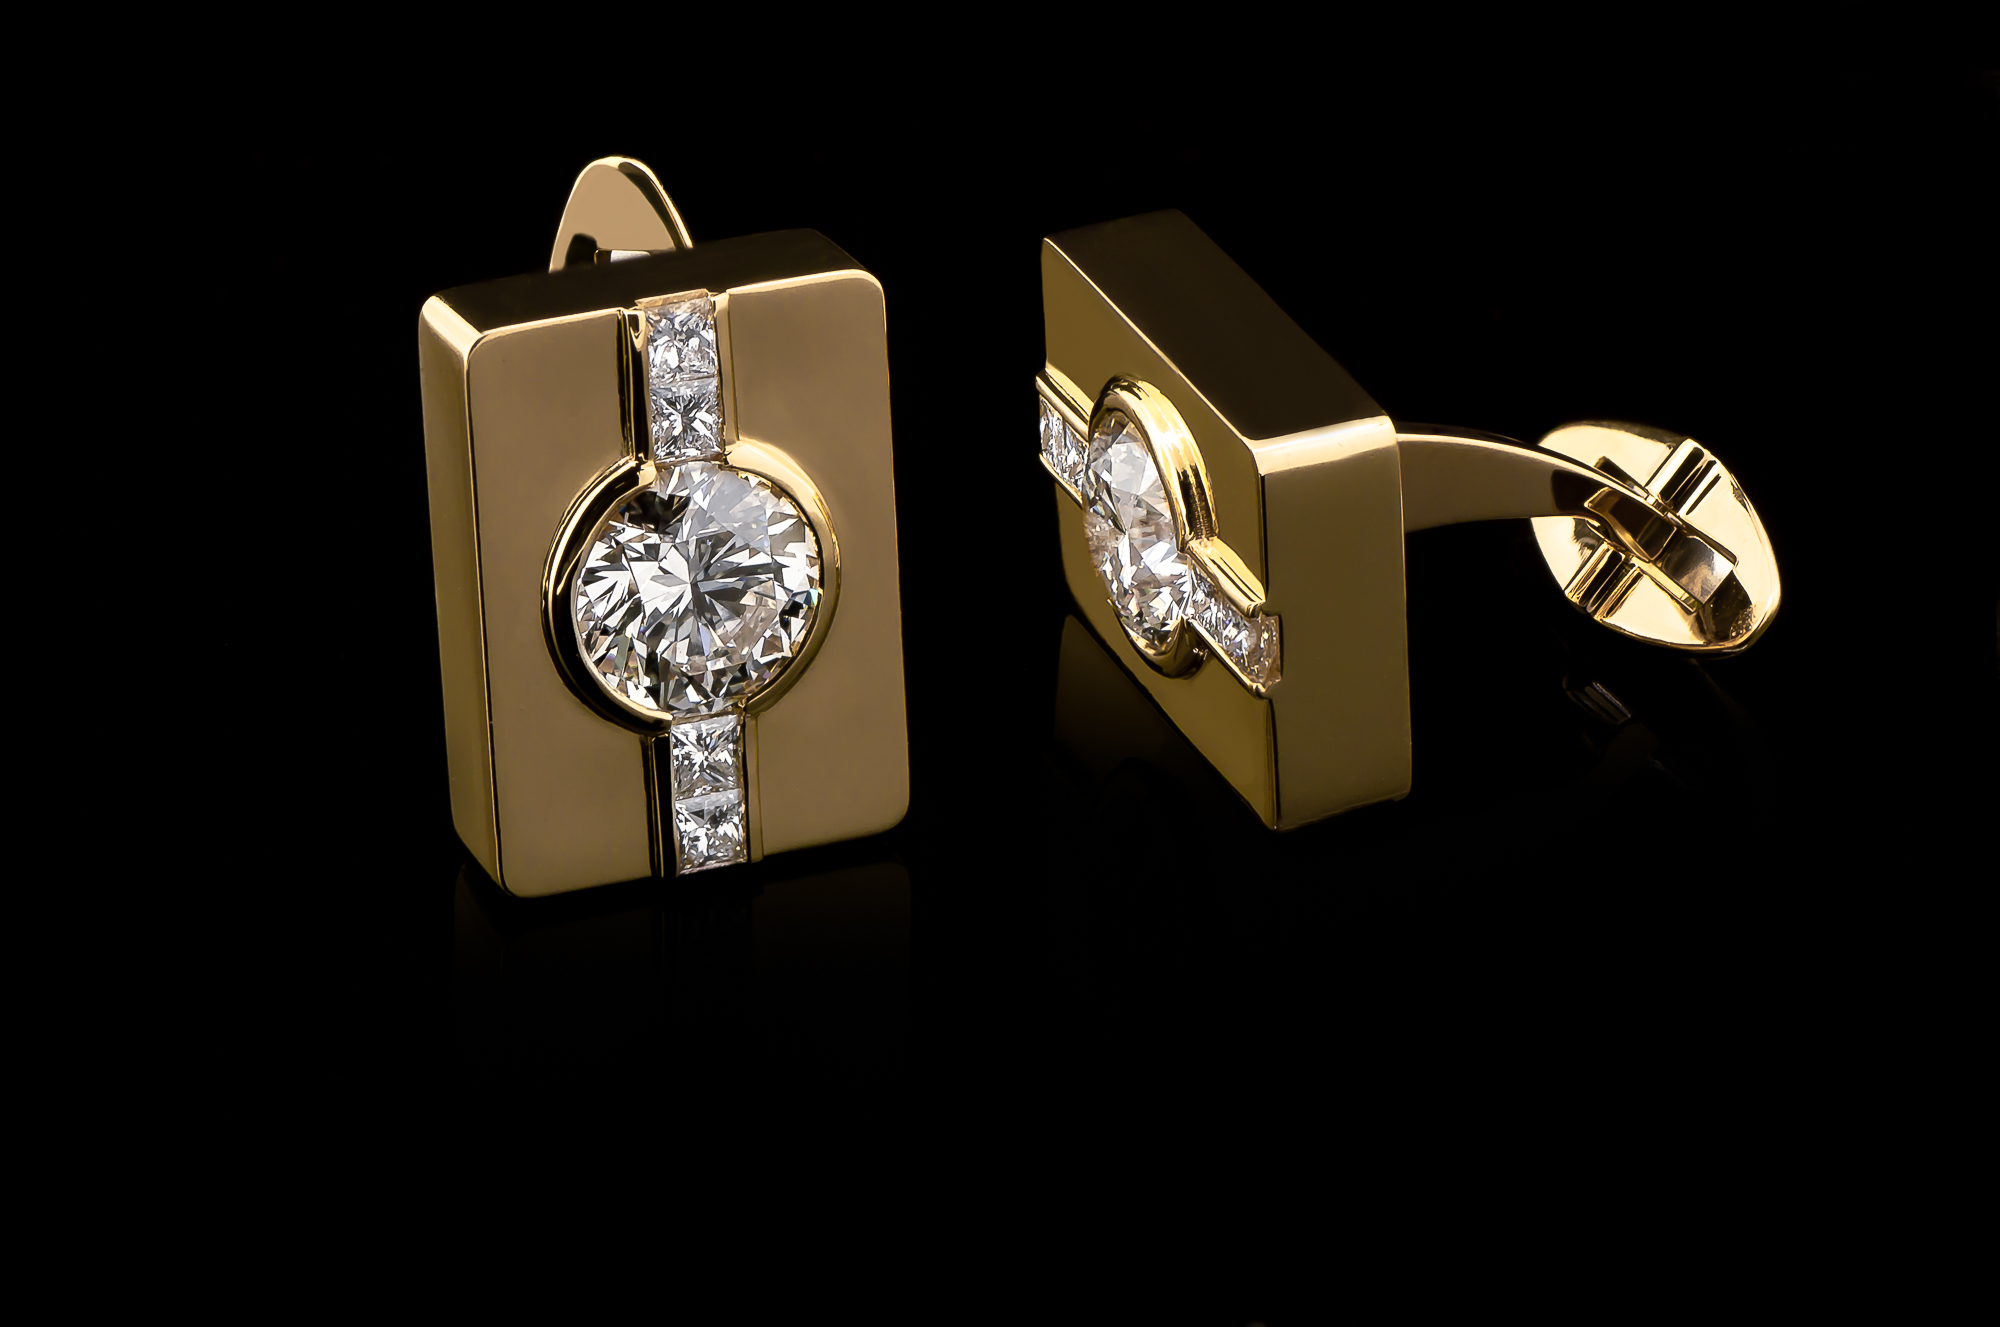 angela patin gold square cufflinks (1 of 1).jpg